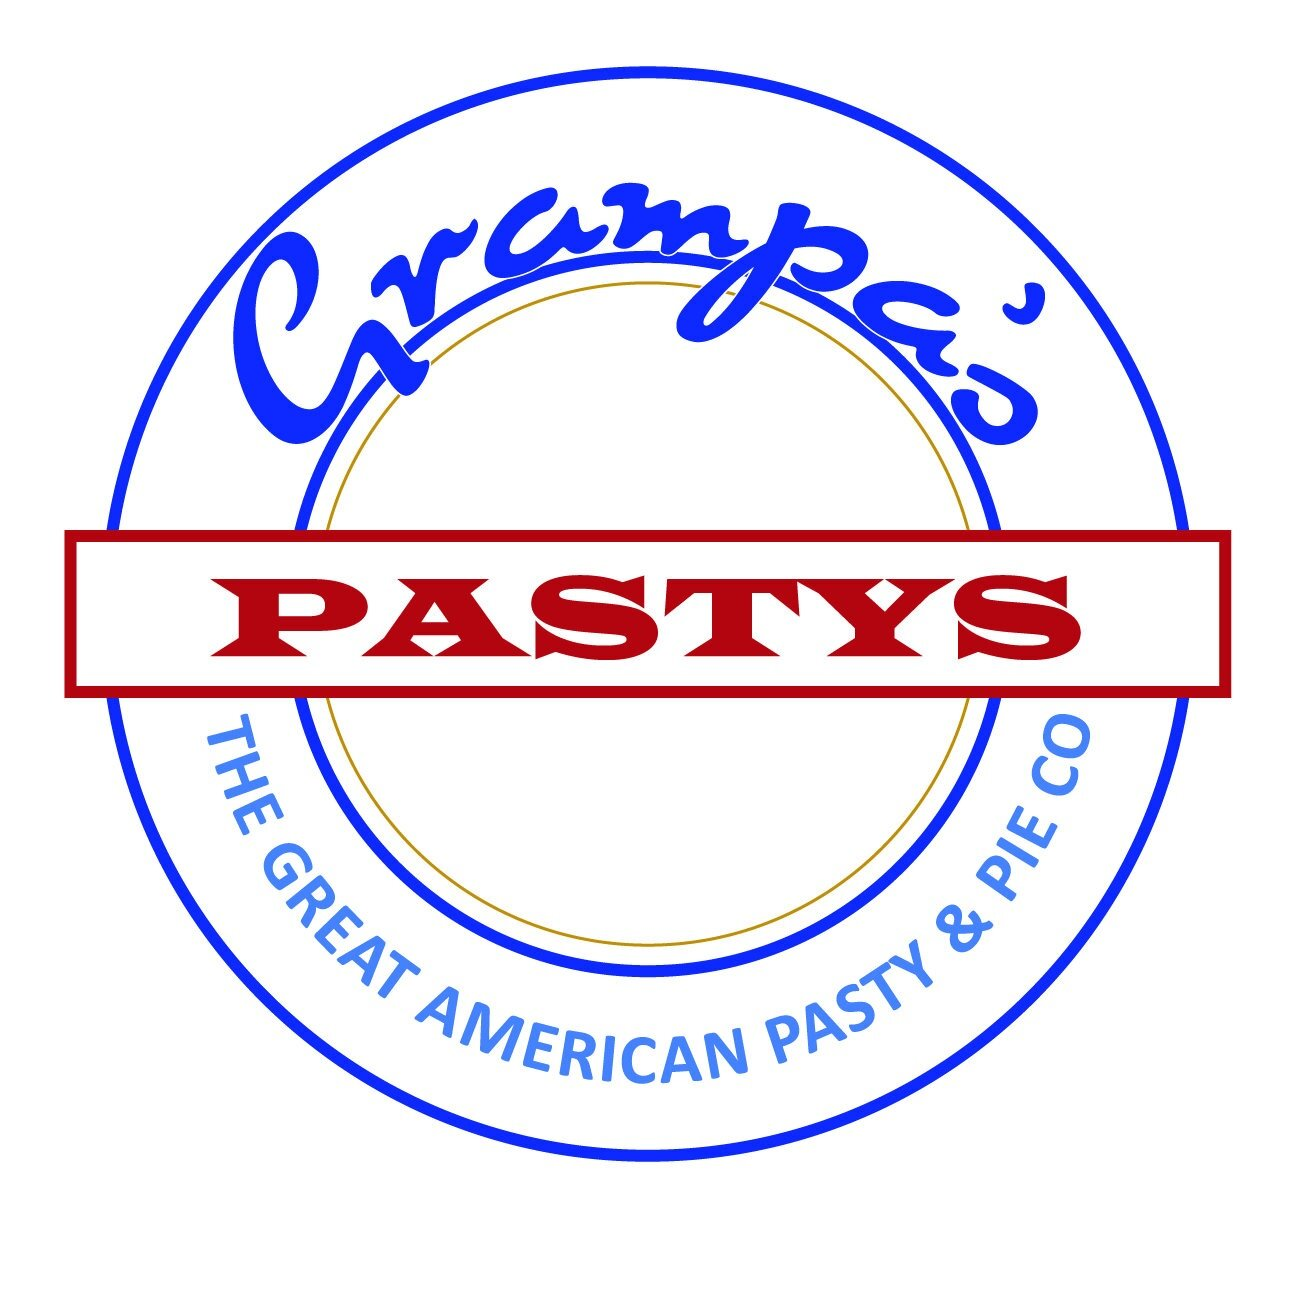 GRAMPA'S PASTY & PIE CO